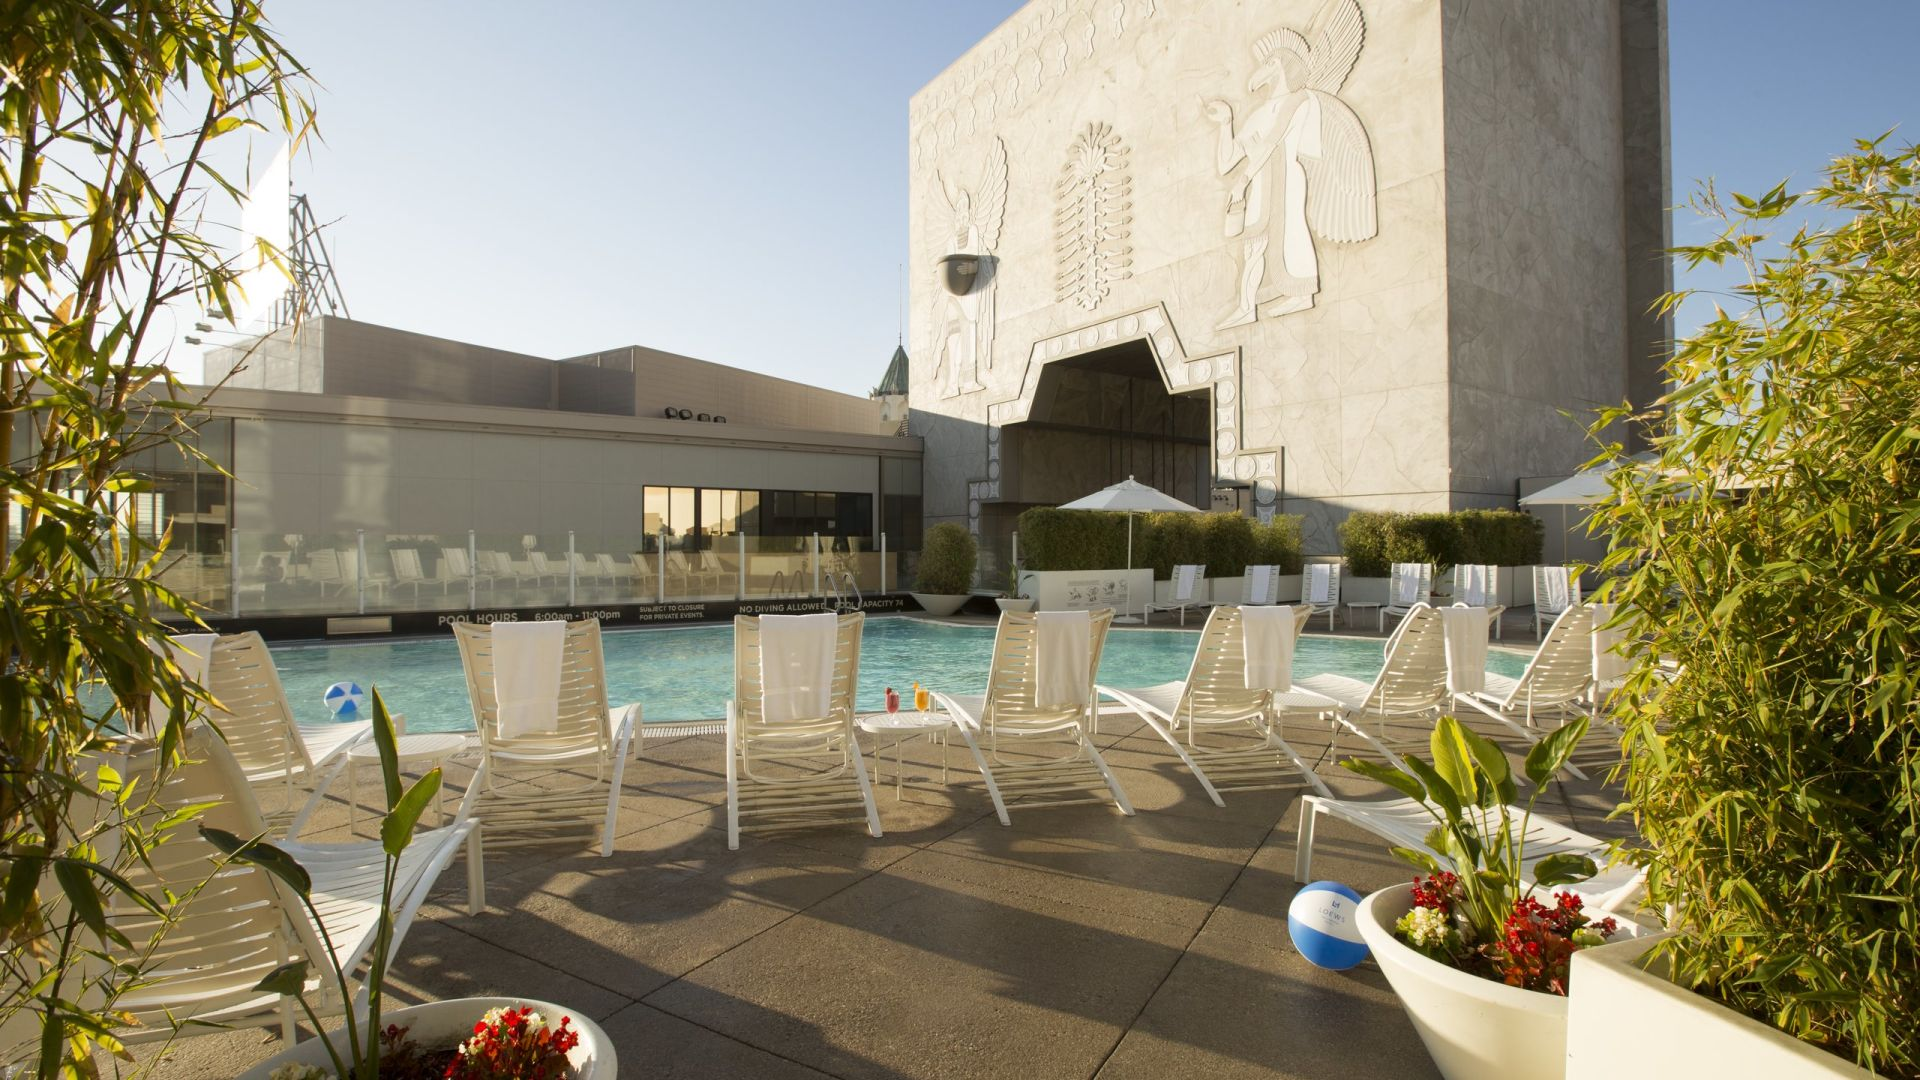 |Stay 3 Nights and Save 20% | Save 20% on stays of 3 nights or longer in Hollywood. | Book Now